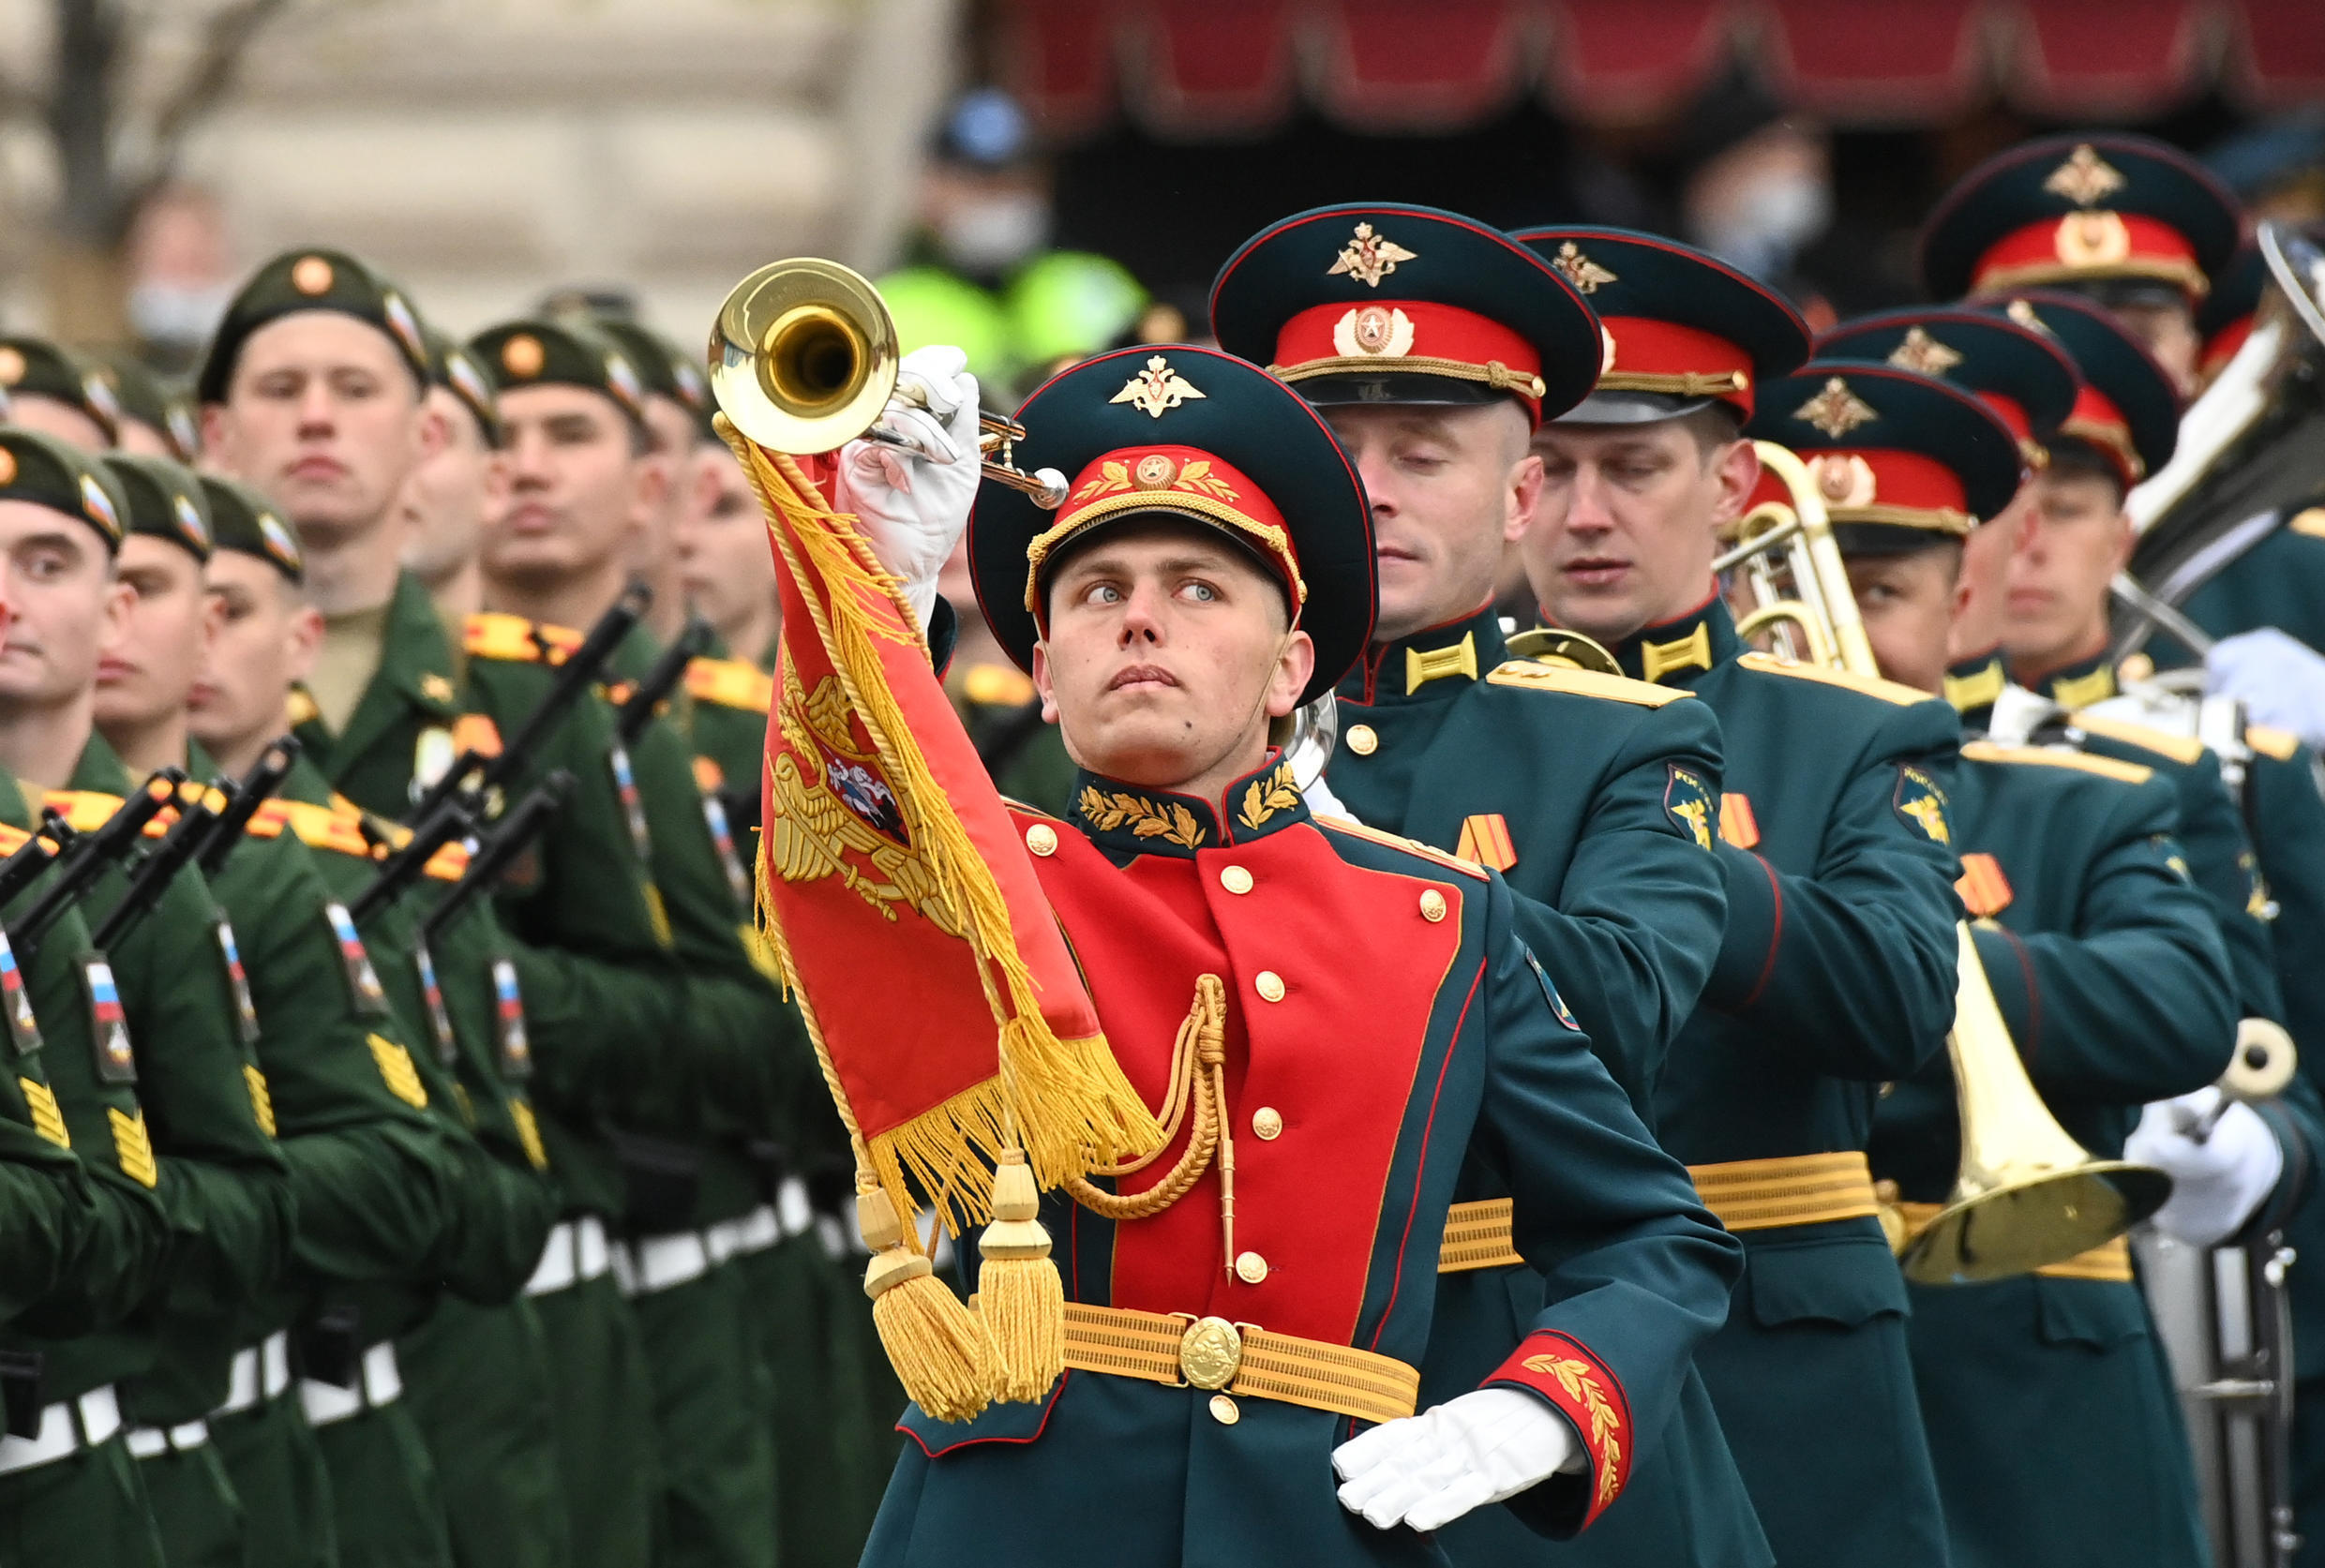 Thousands of soldiers and veterans were on Red Square for the annual WWII Victory parade